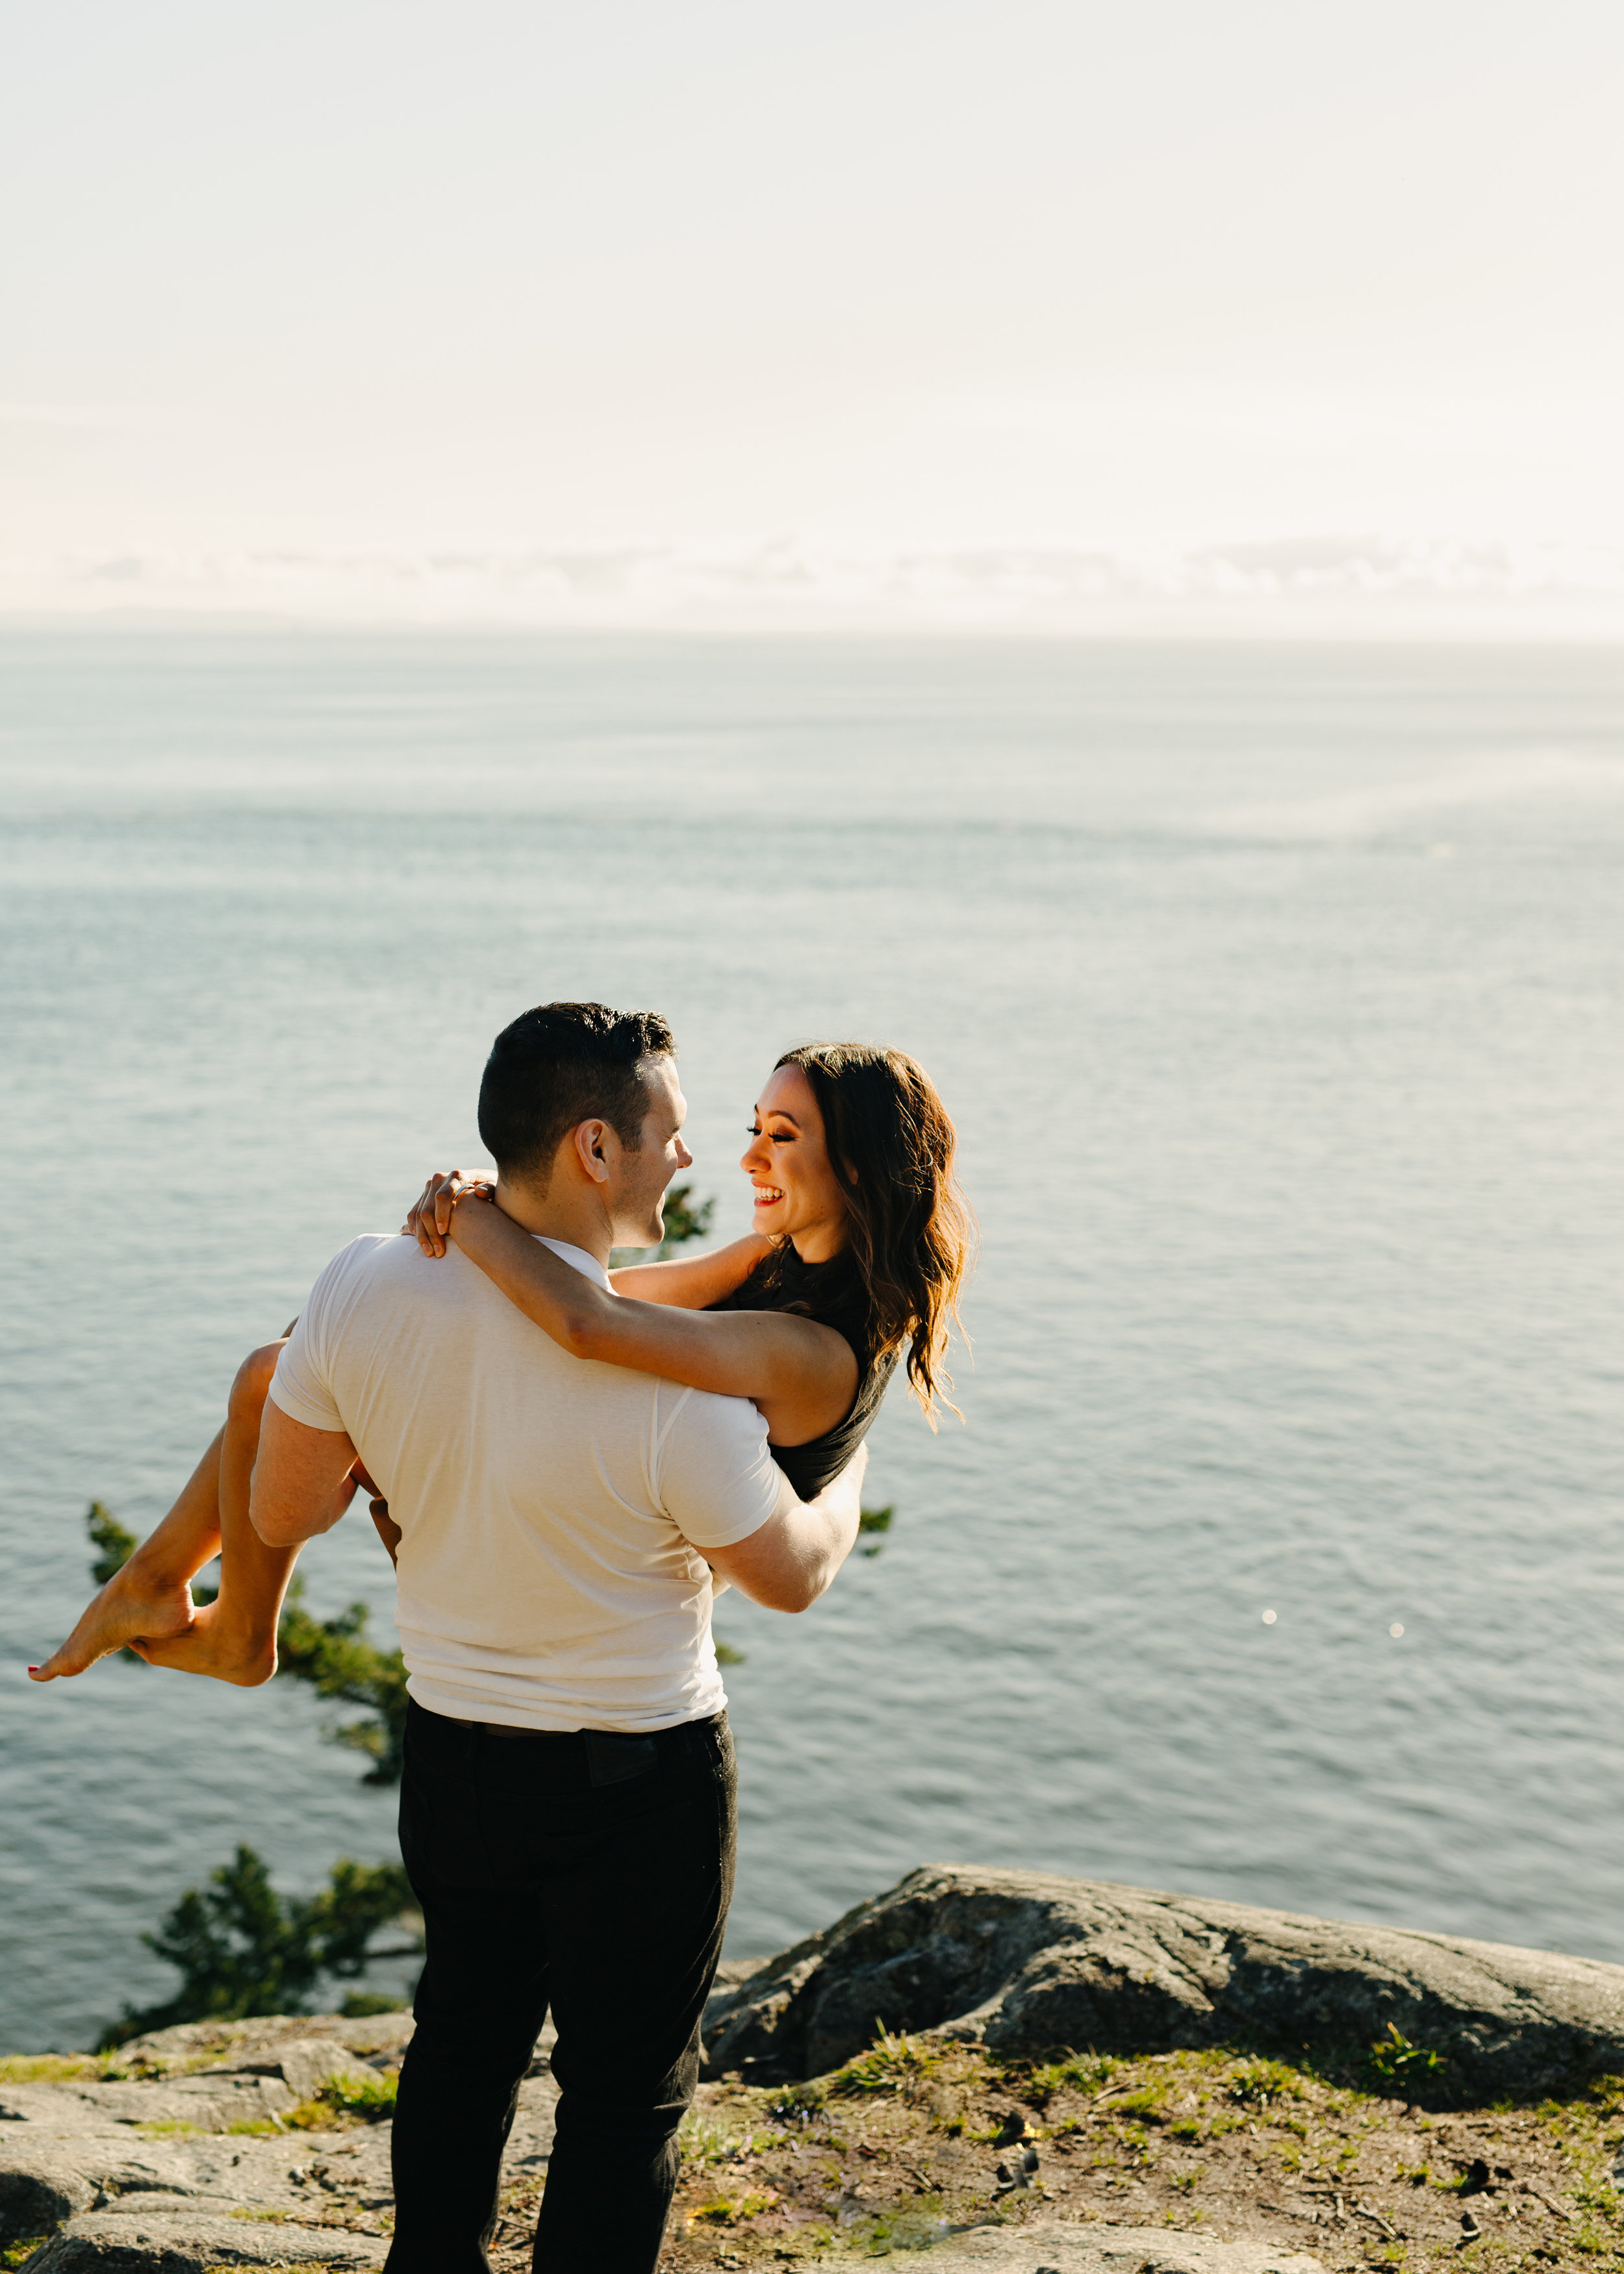 herafilms_prewedding_jayne_connor_hera_selects-23.jpg